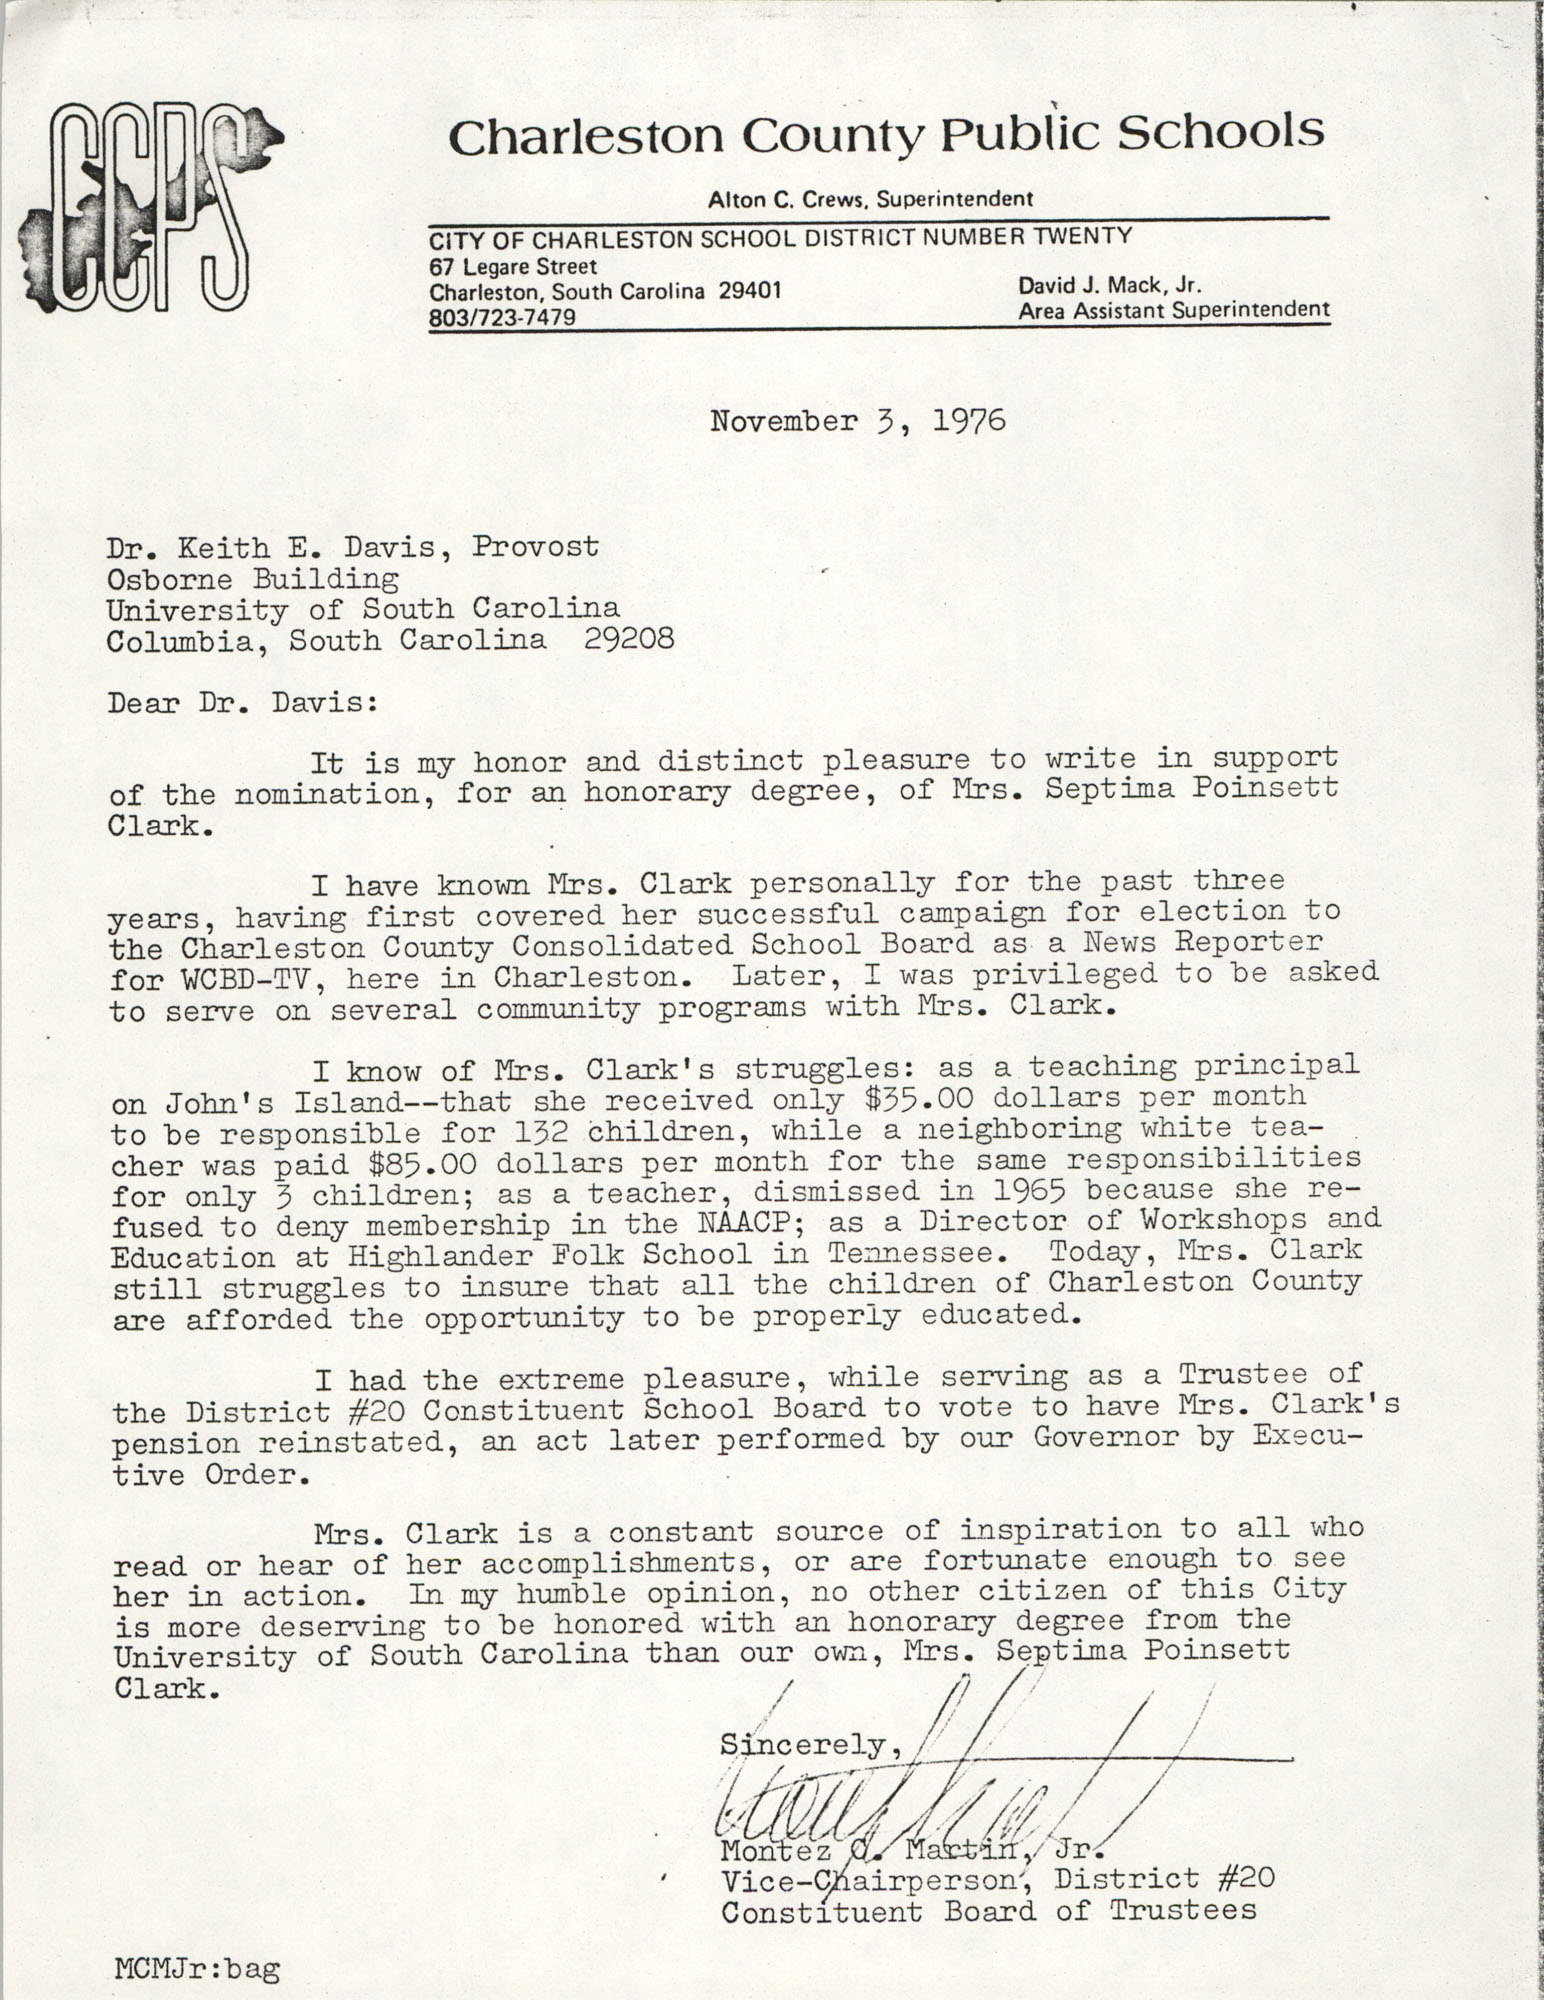 Letter from Montez O. Martin, Jr. to Keith E. Davis, November 3, 1976